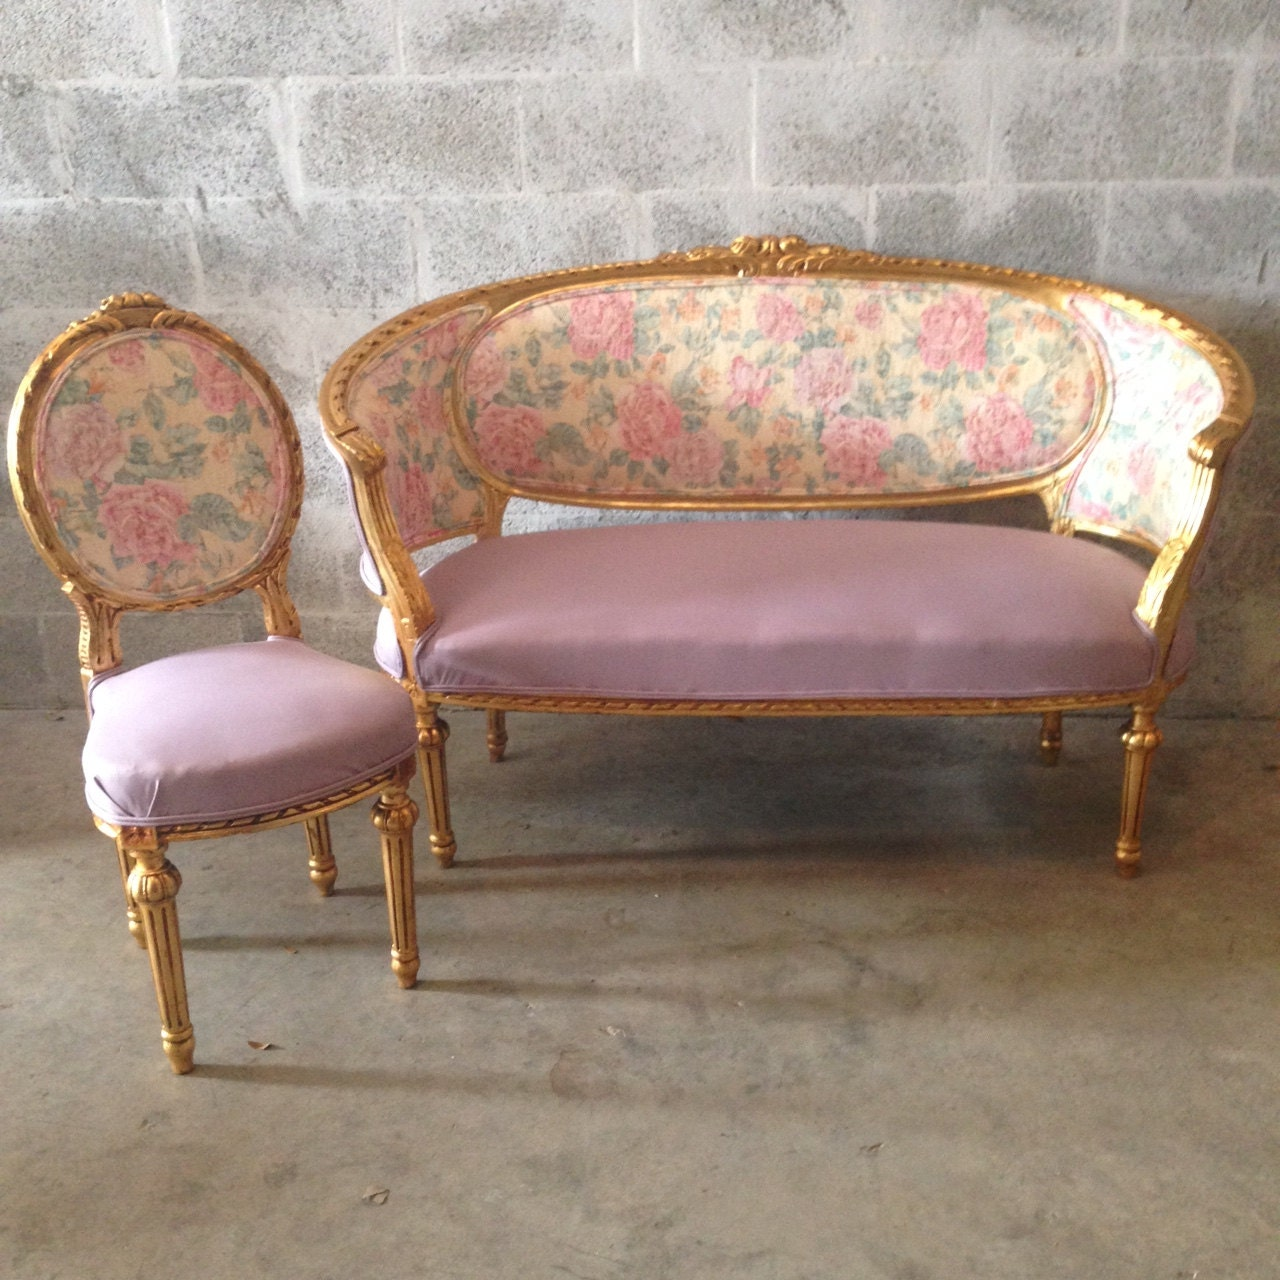 Photo Collection Gold Chairs Floral Fabric